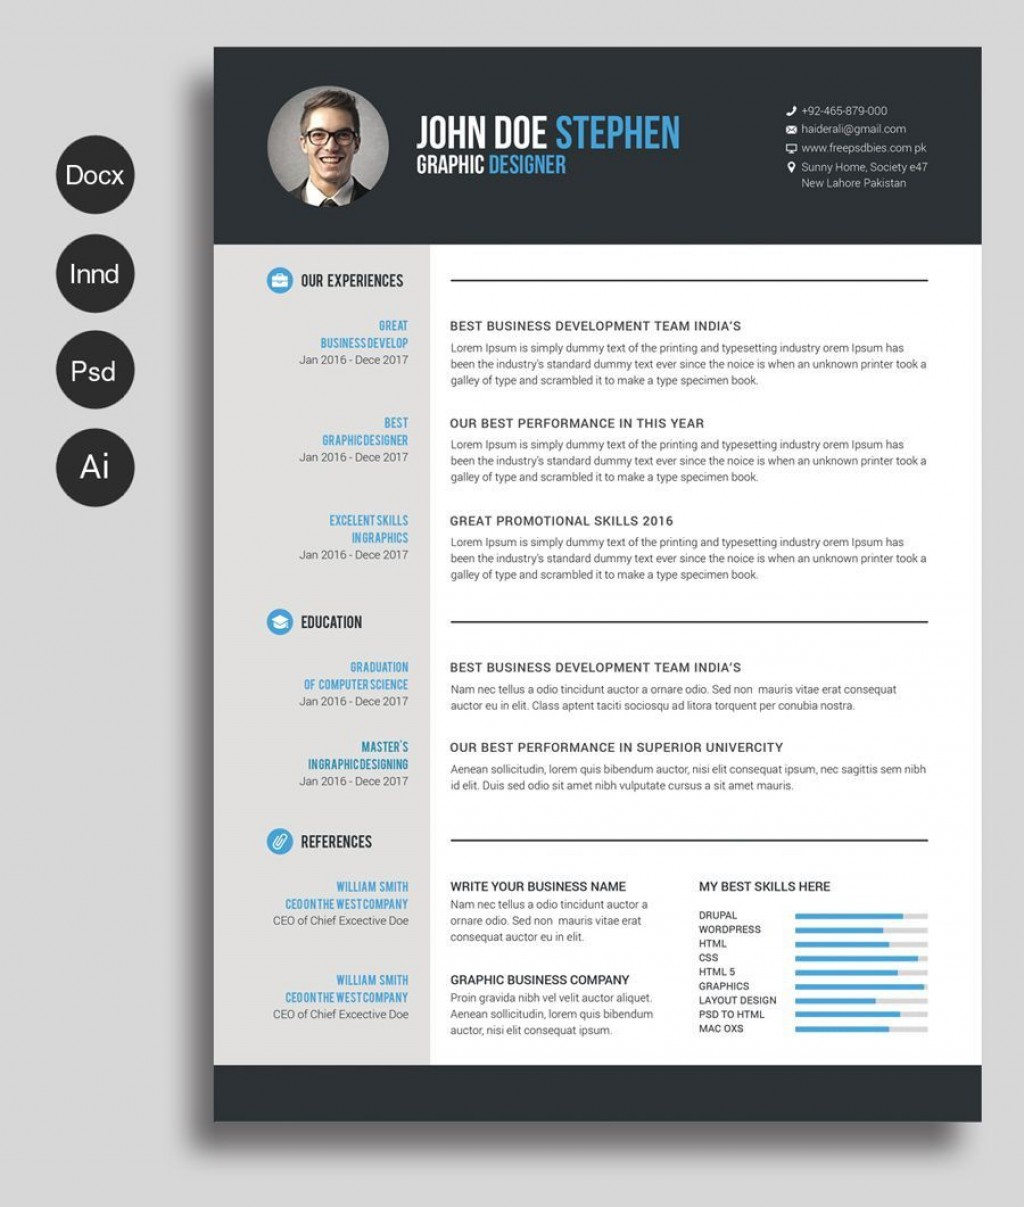 001 Remarkable Microsoft Word Free Template Sample  Templates For Report Invoice Uk DownloadLarge